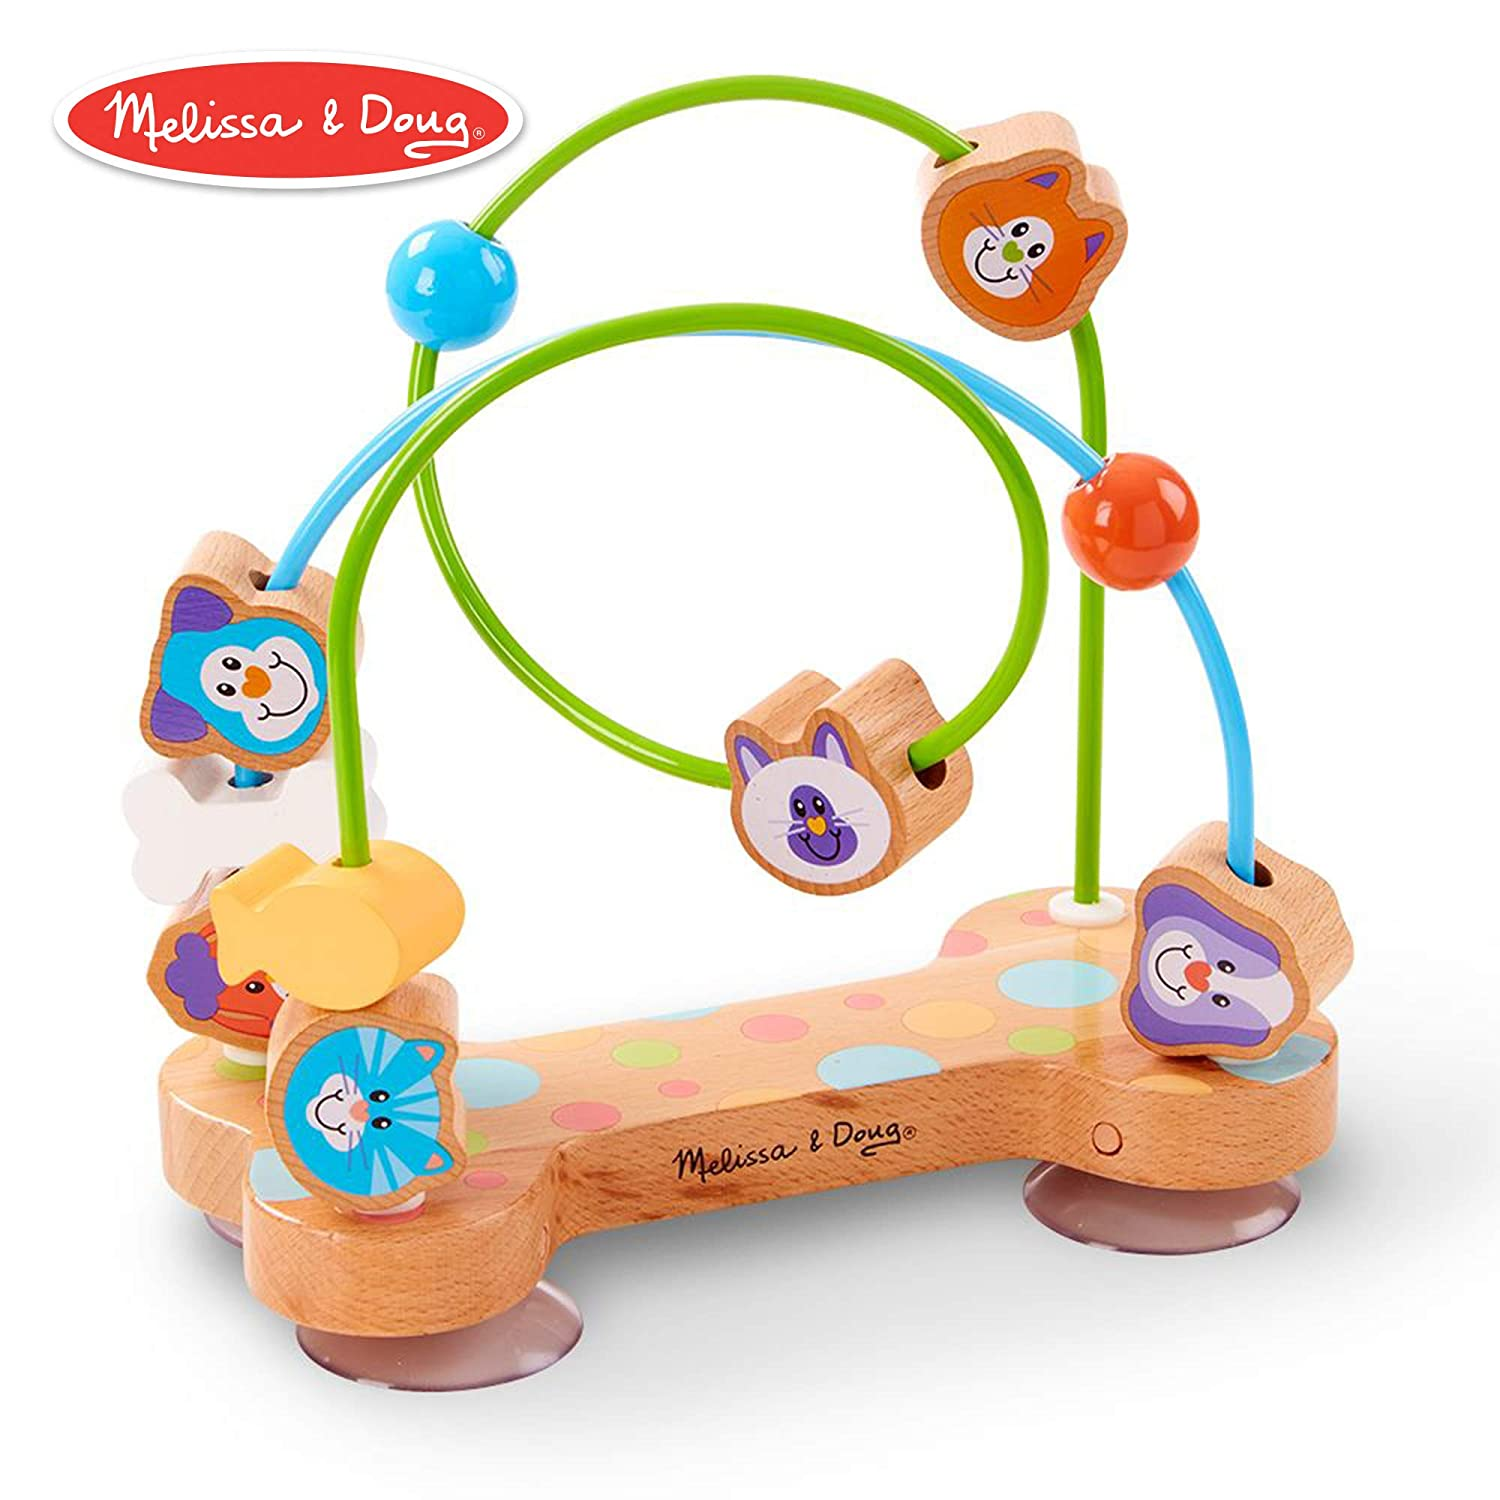 Melissa & Doug First Play Pets Wooden Bead Maze with Suction Cups for Babies & Toddlers